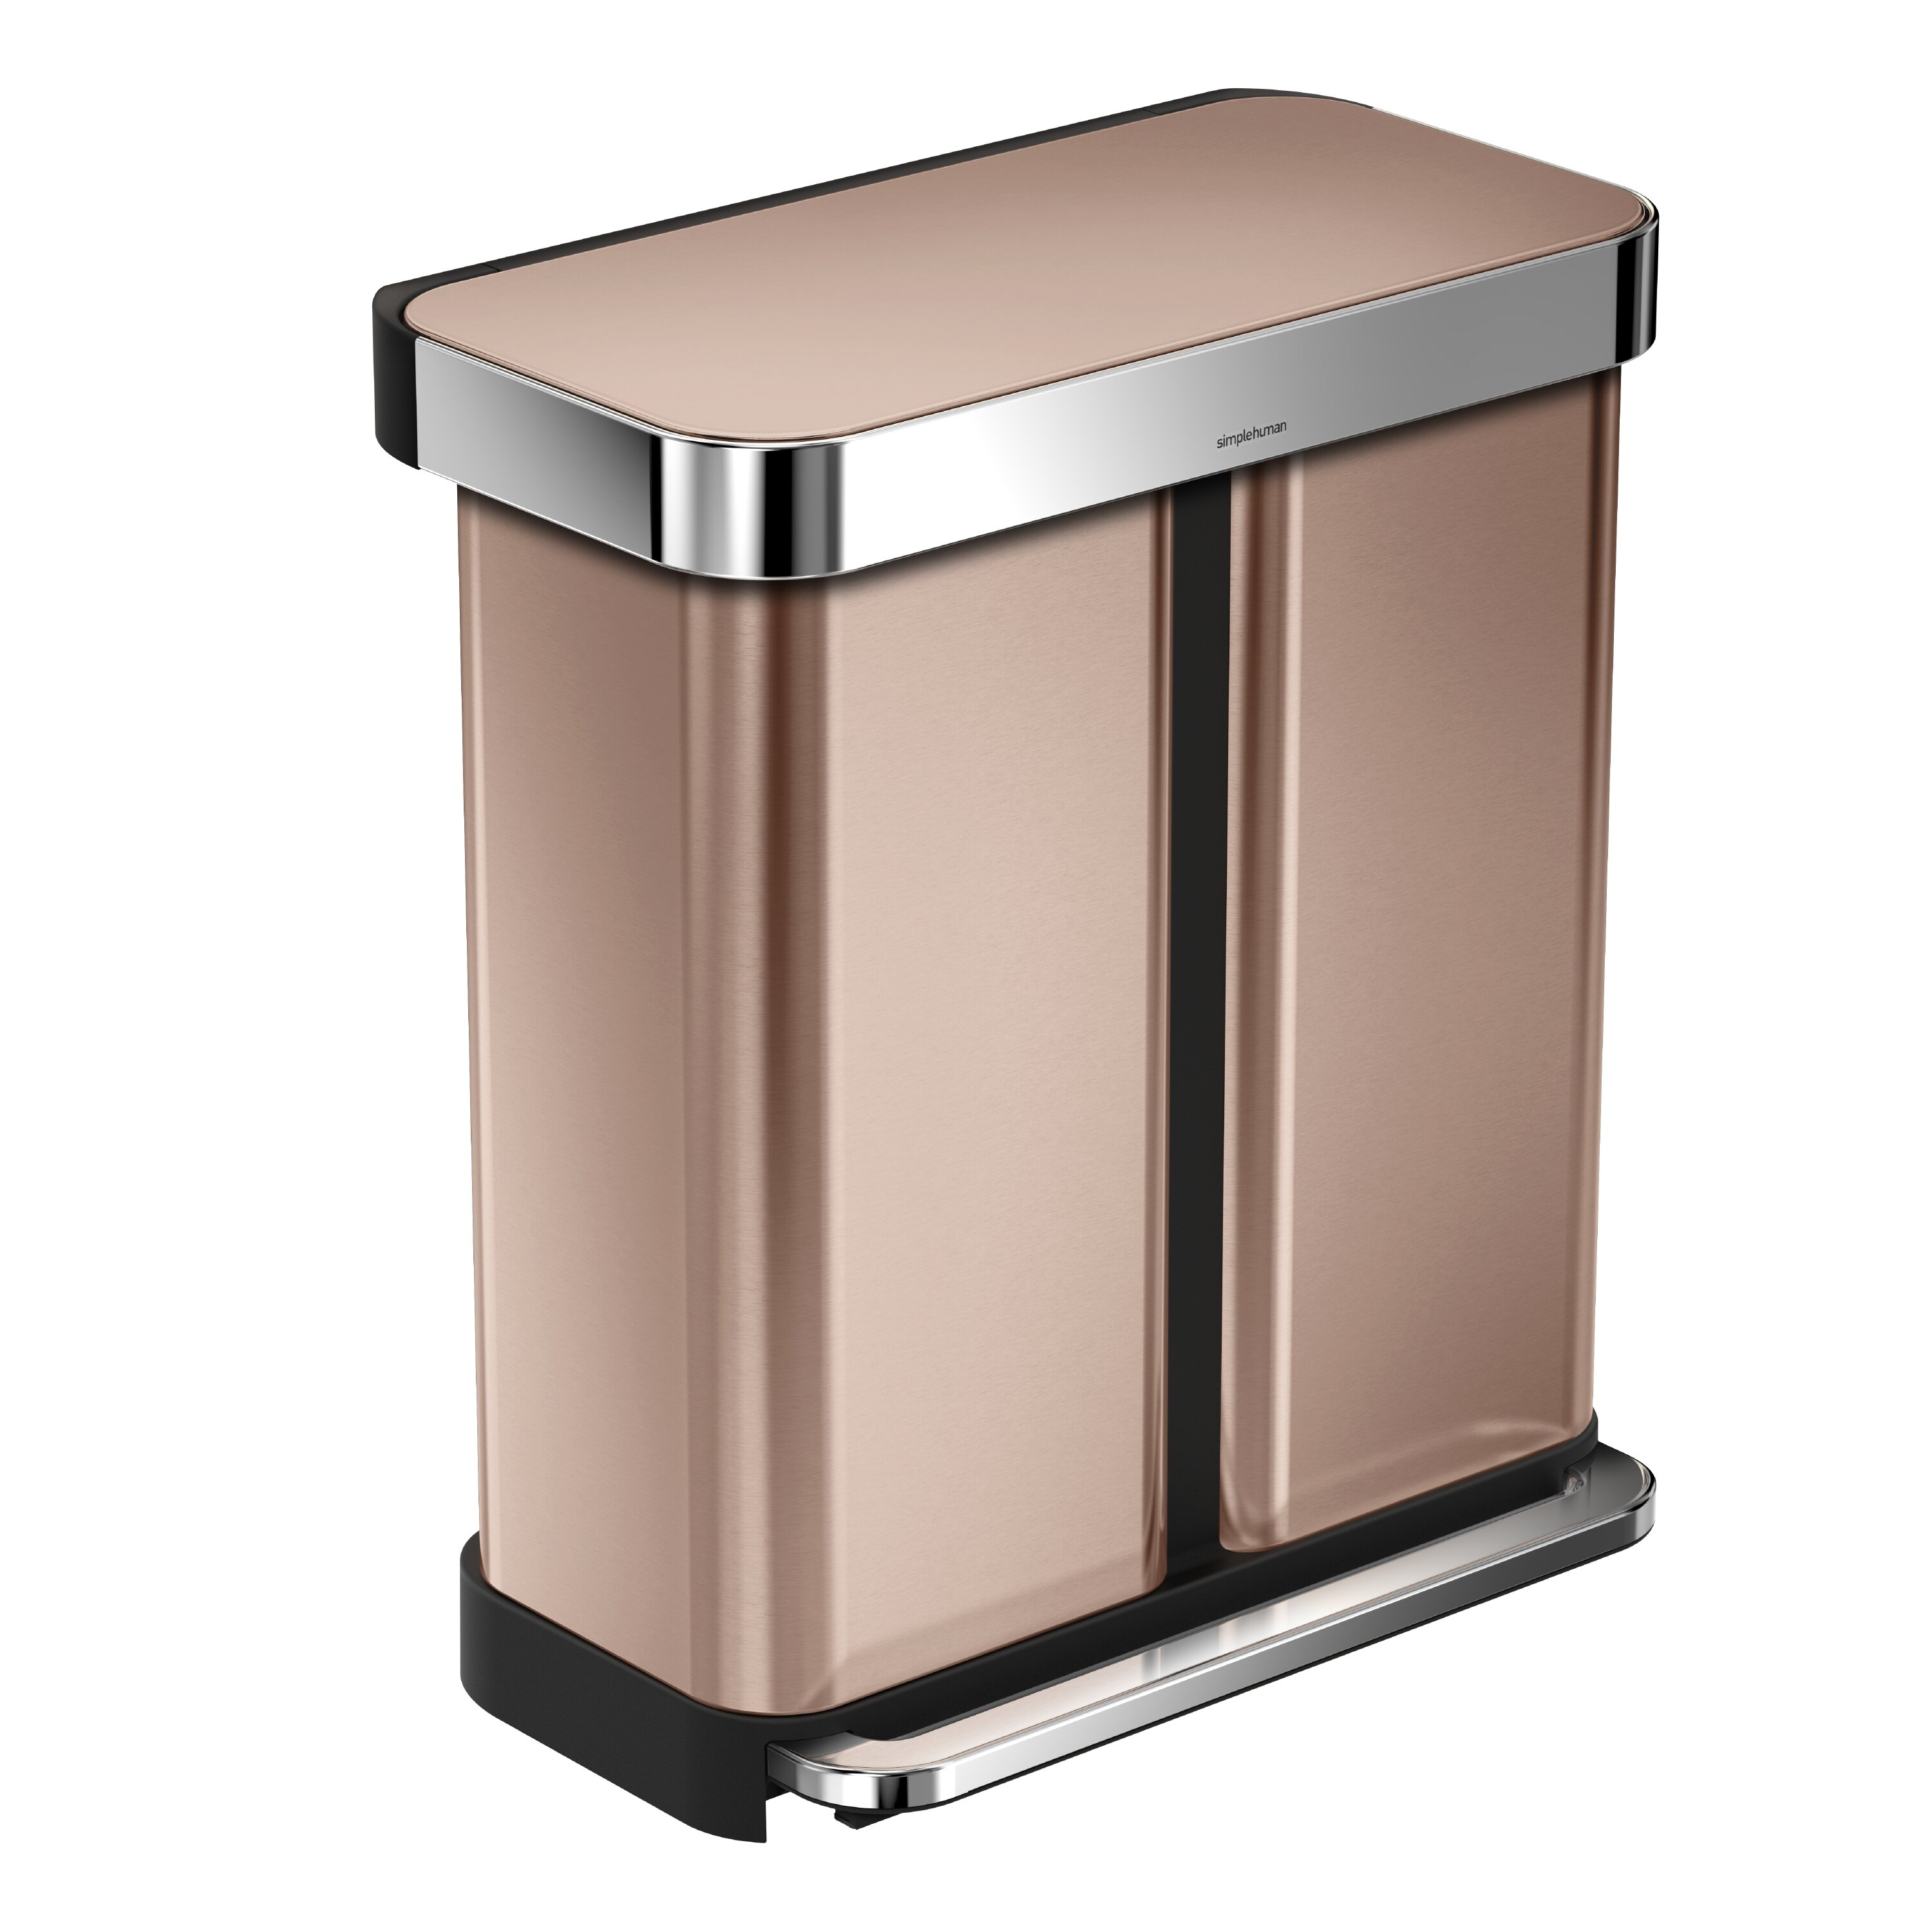 Simplehuman 15 gallon step on stainless steel trash can for Simplehuman trash can